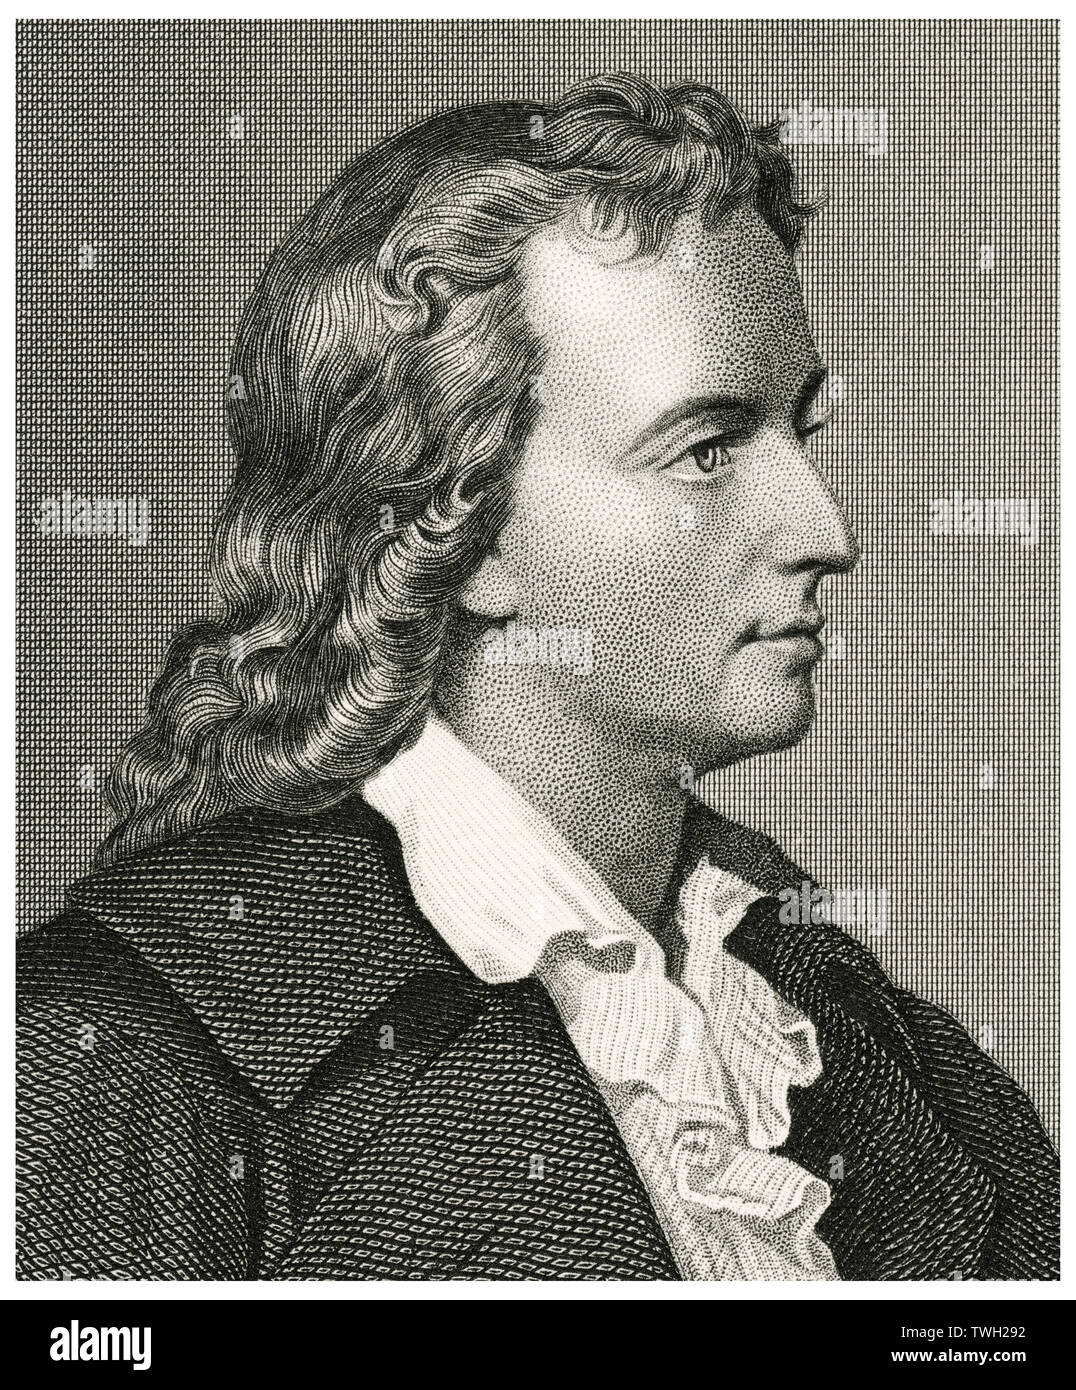 Freidrich Schiller (1759-1805), German Dramatist, Poet, and Literary Theorist, Head and Shoulders Portrait, Steel Engraving, Portrait Gallery of Eminent Men and Women of Europe and America by Evert A. Duyckinck, Published by Henry J. Johnson, Johnson, Wilson & Company, New York, 1873 Stock Photo